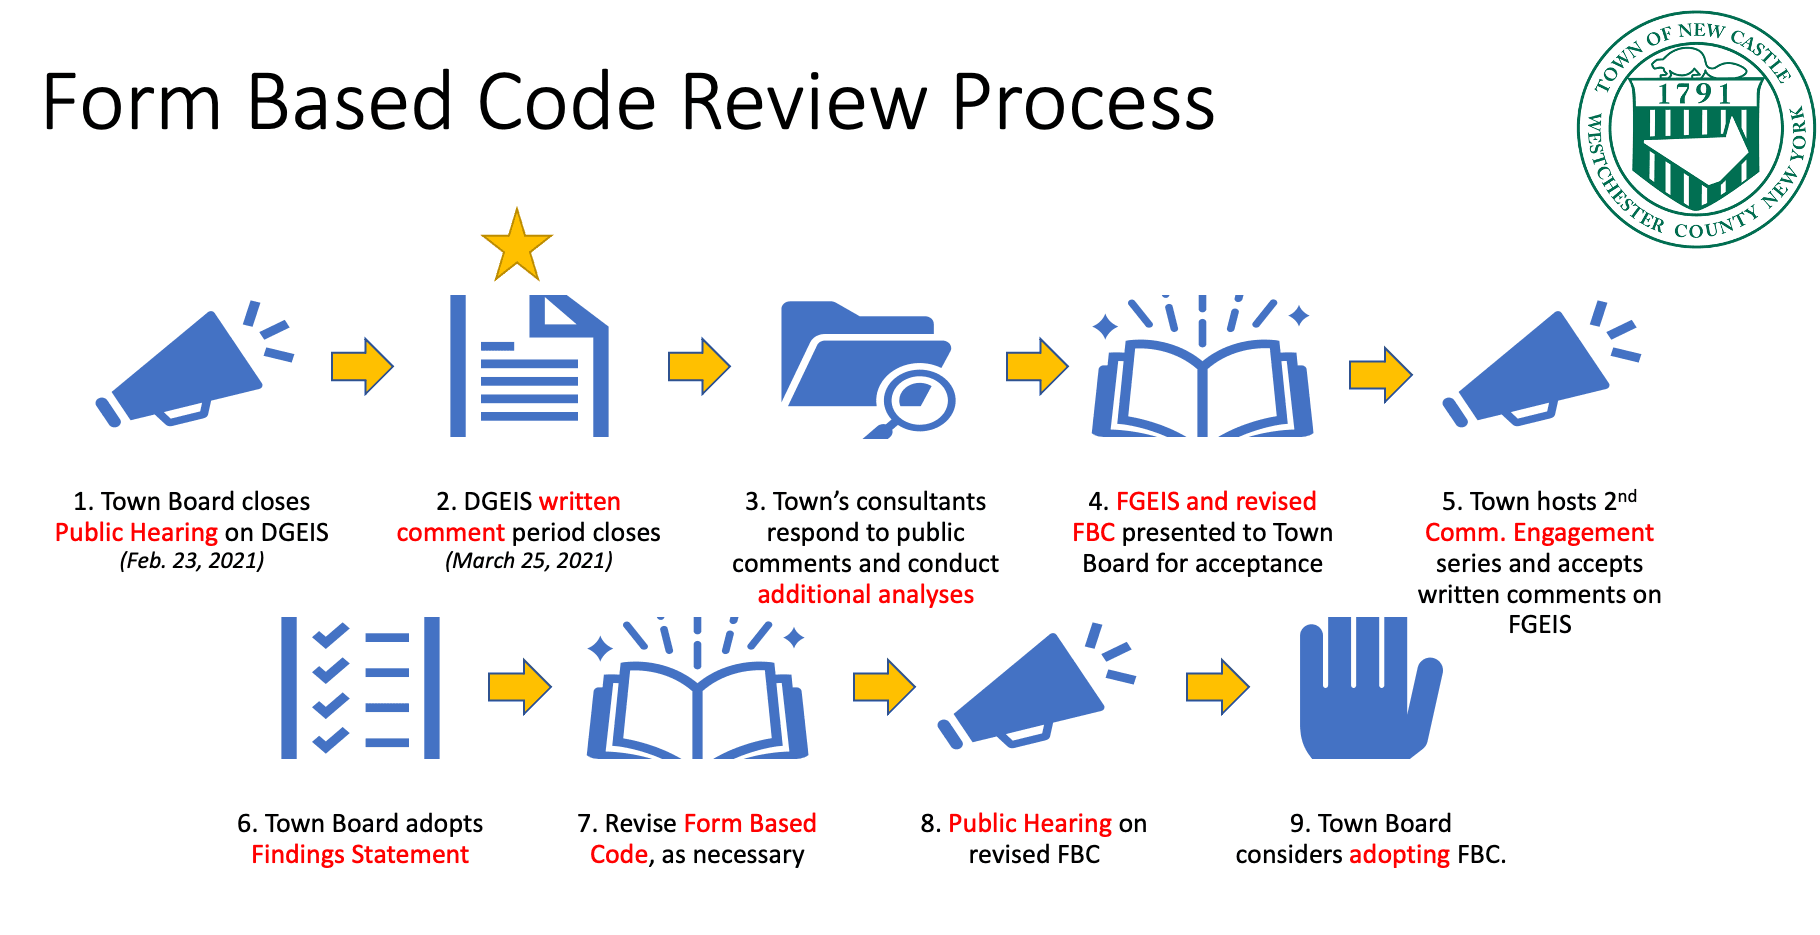 Form Based Code Review Process Revised 2.26.2021